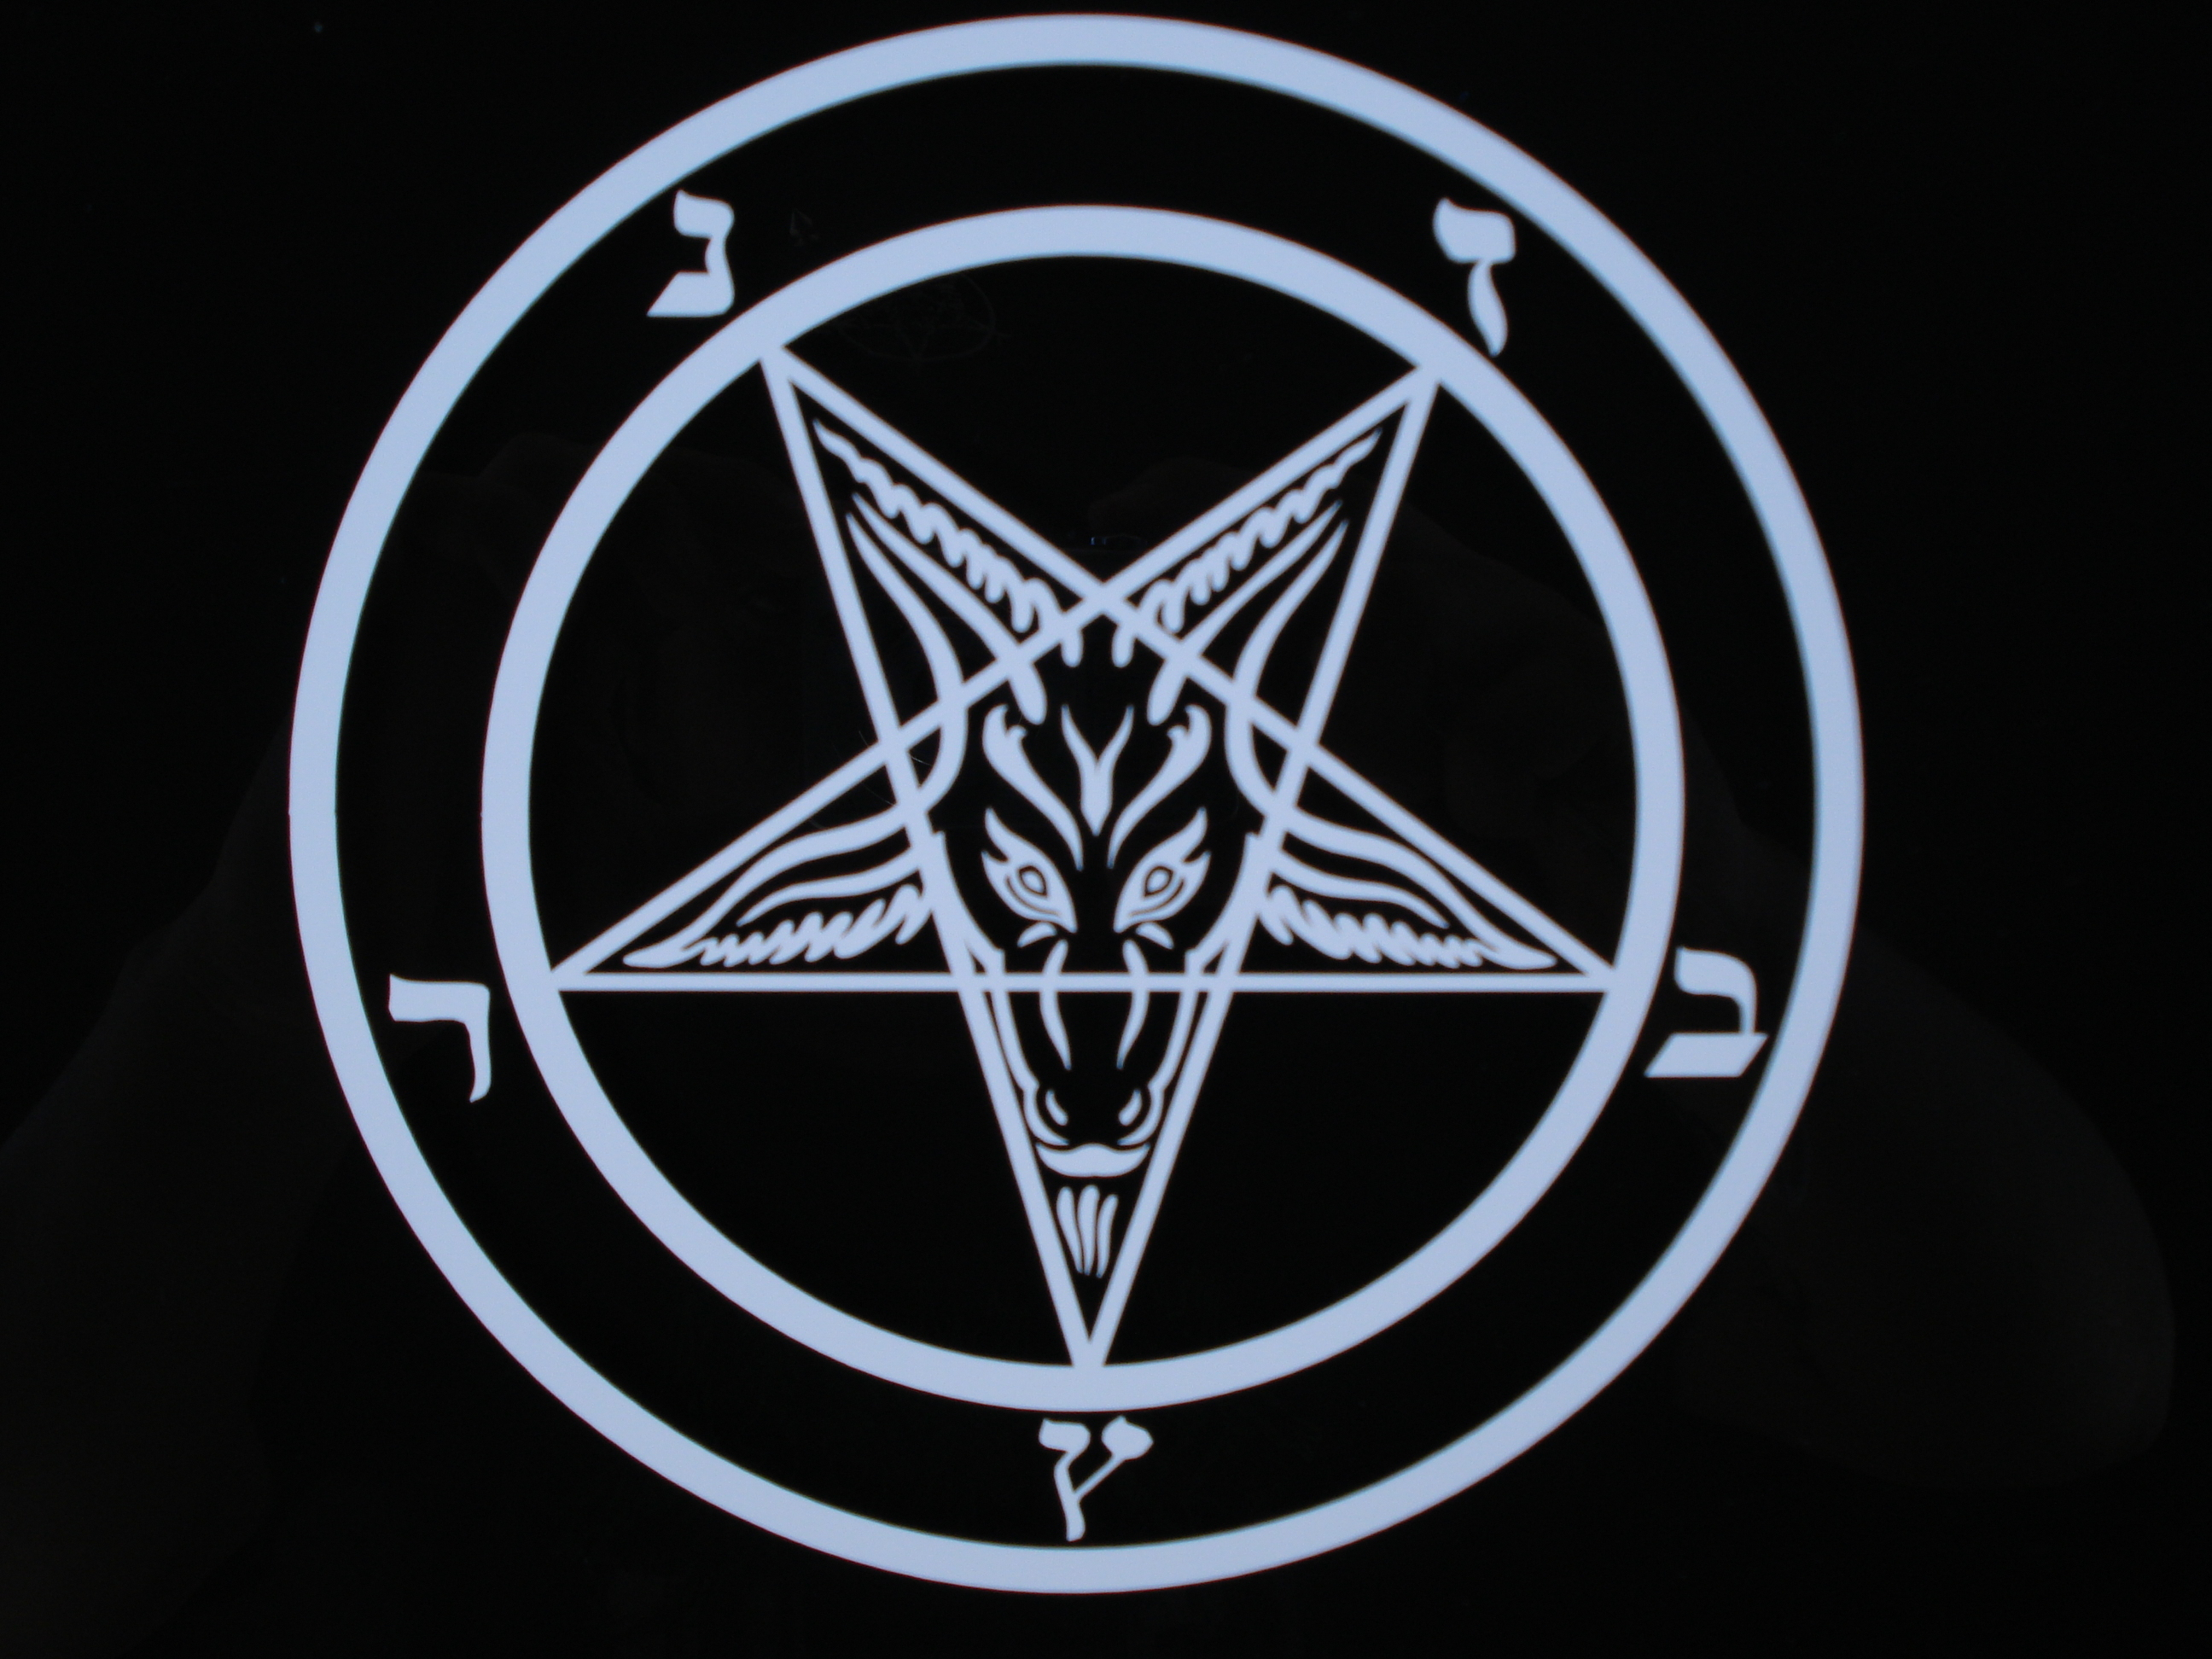 Pentagram Wallpapers - Top Free Pentagram Backgrounds ... |Pentagram Wallpaper Uhd